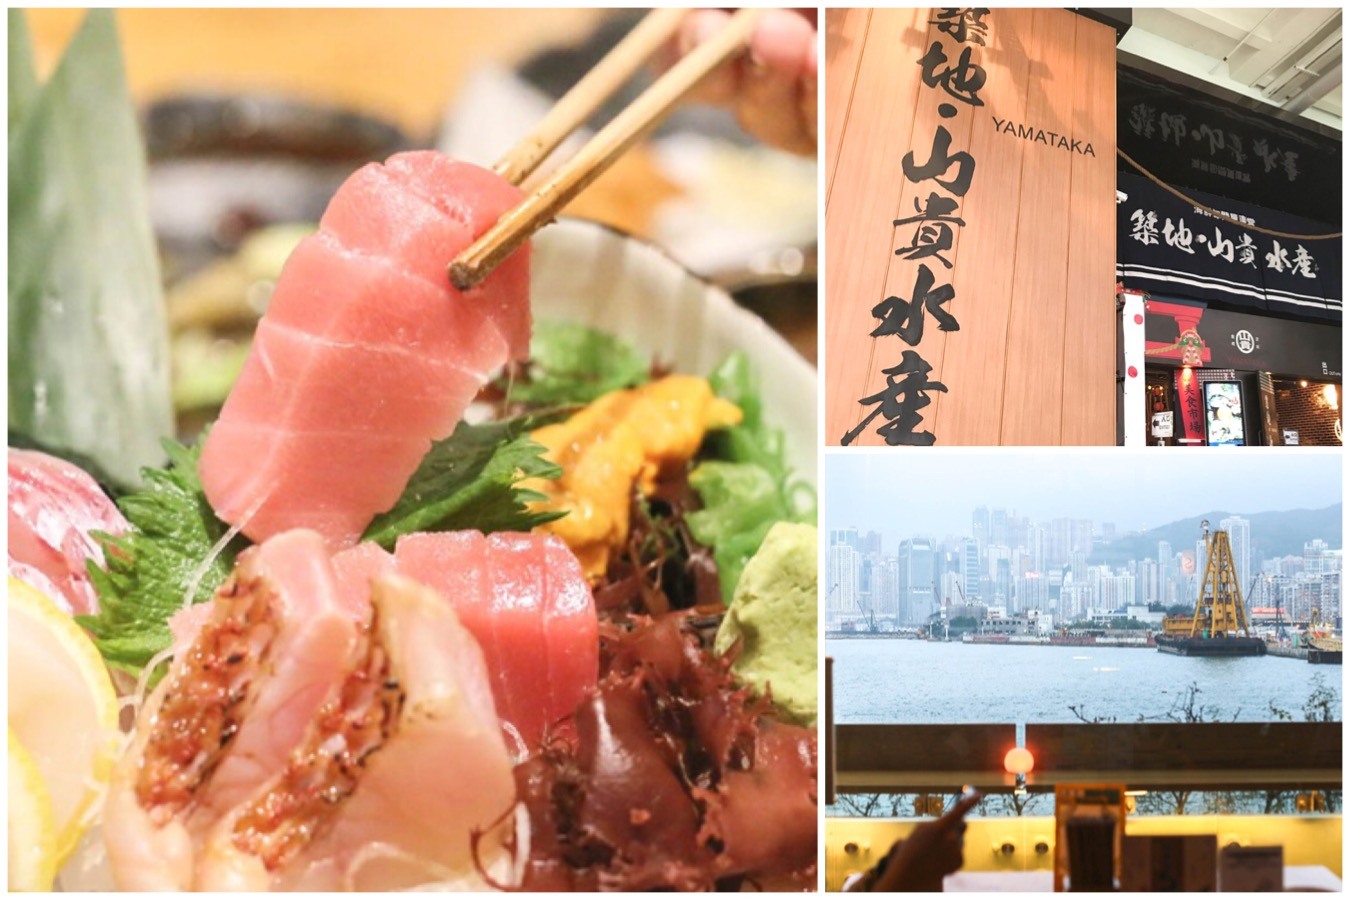 Yamataka Seafood Market 築地山貴水產市場 - Tsukiji Styled Japanese Market In Hong Kong, With Amazing Harbour Views